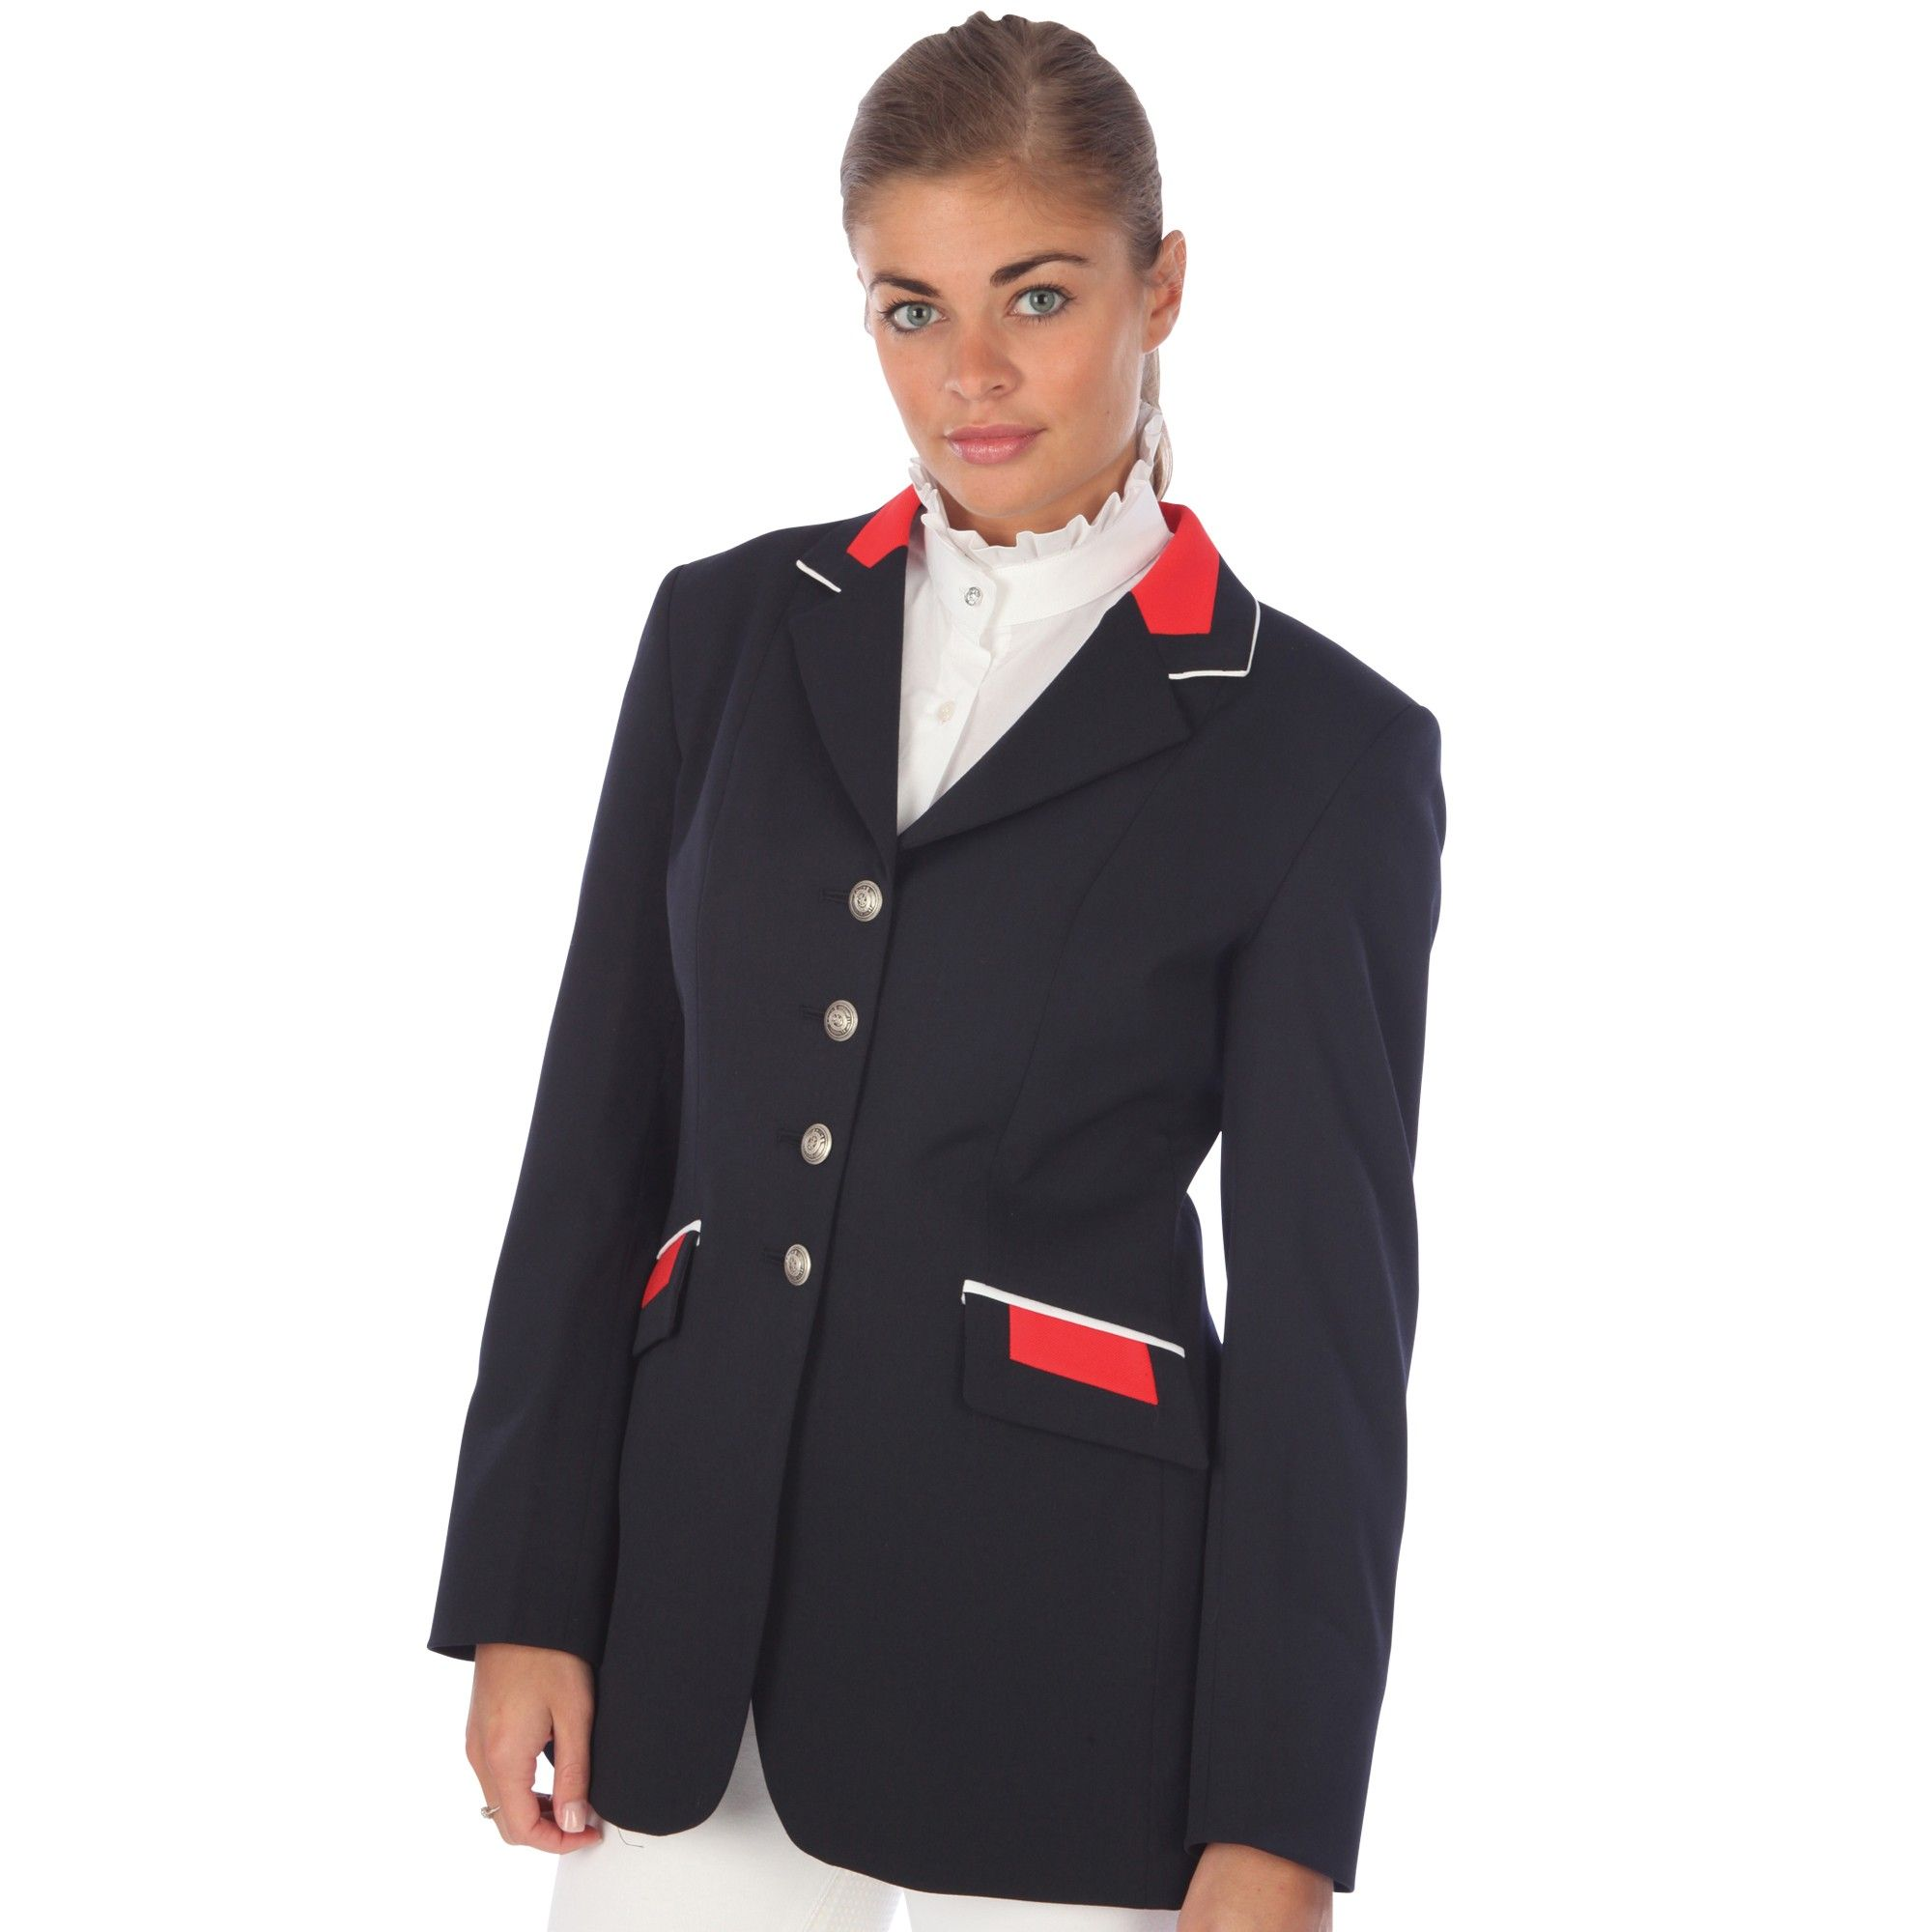 A slim fit double rear vents show jacket perfect for the showing season.